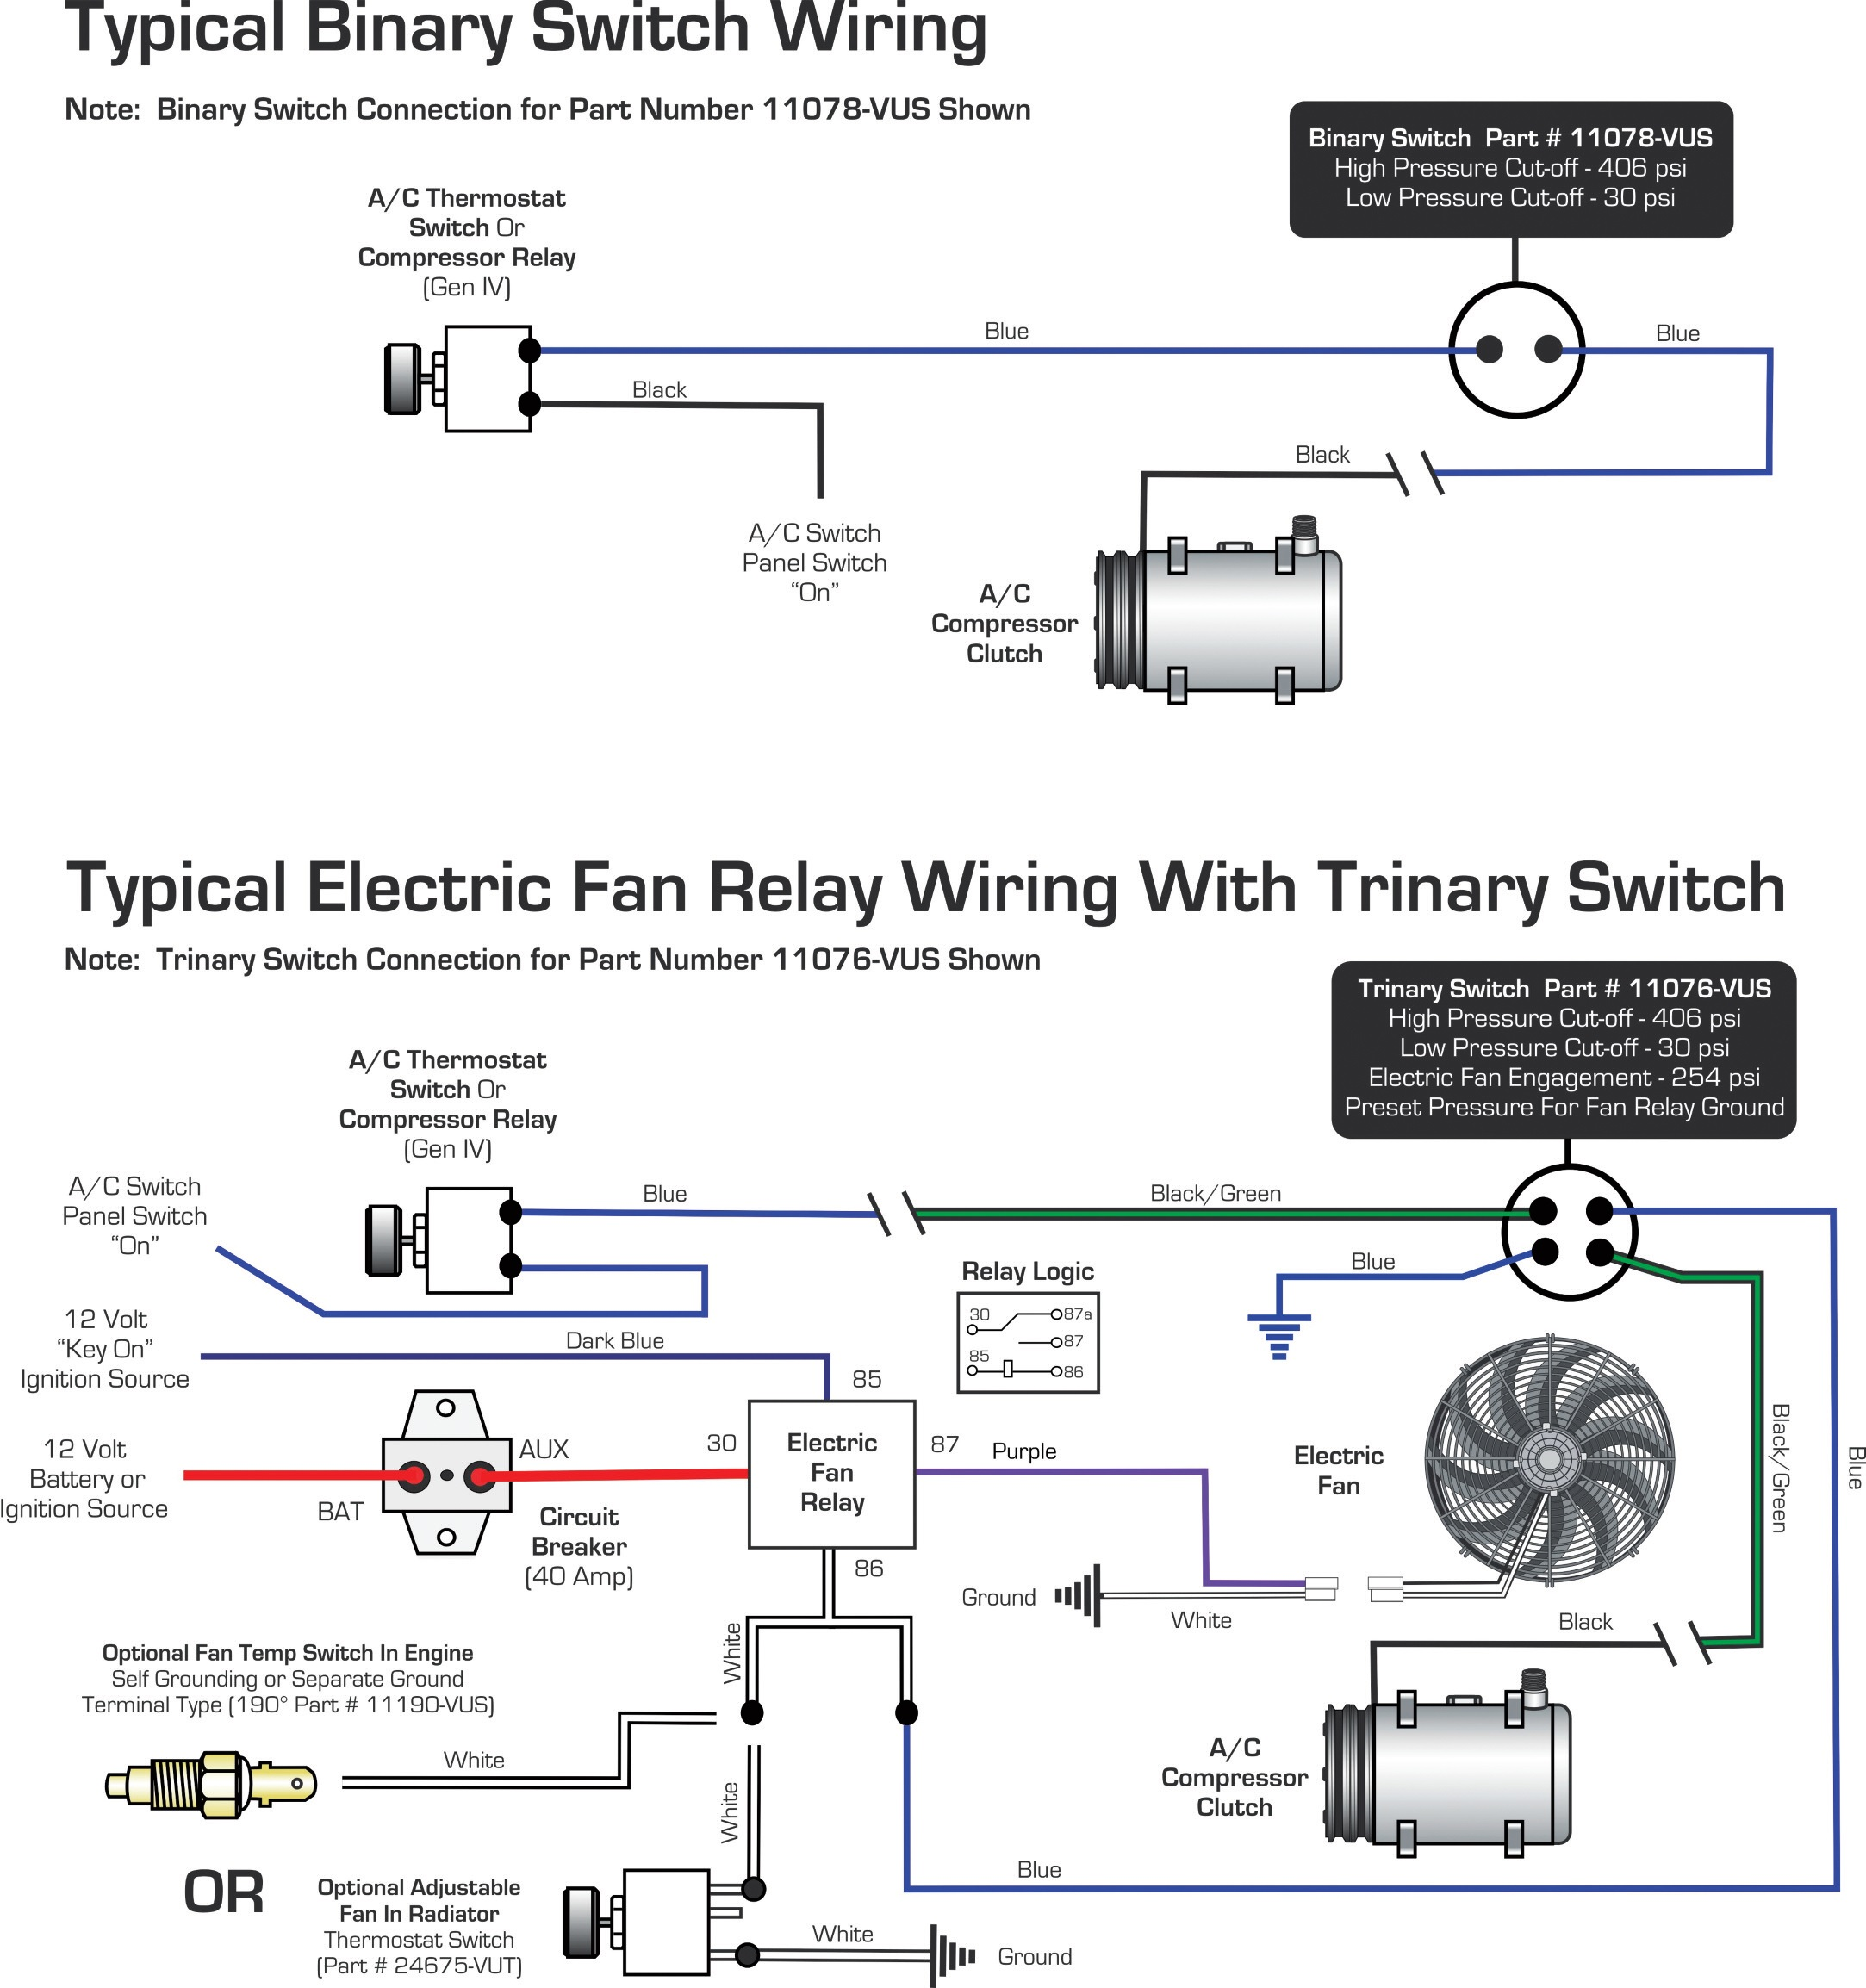 vintage air trinary switch wiring diagram